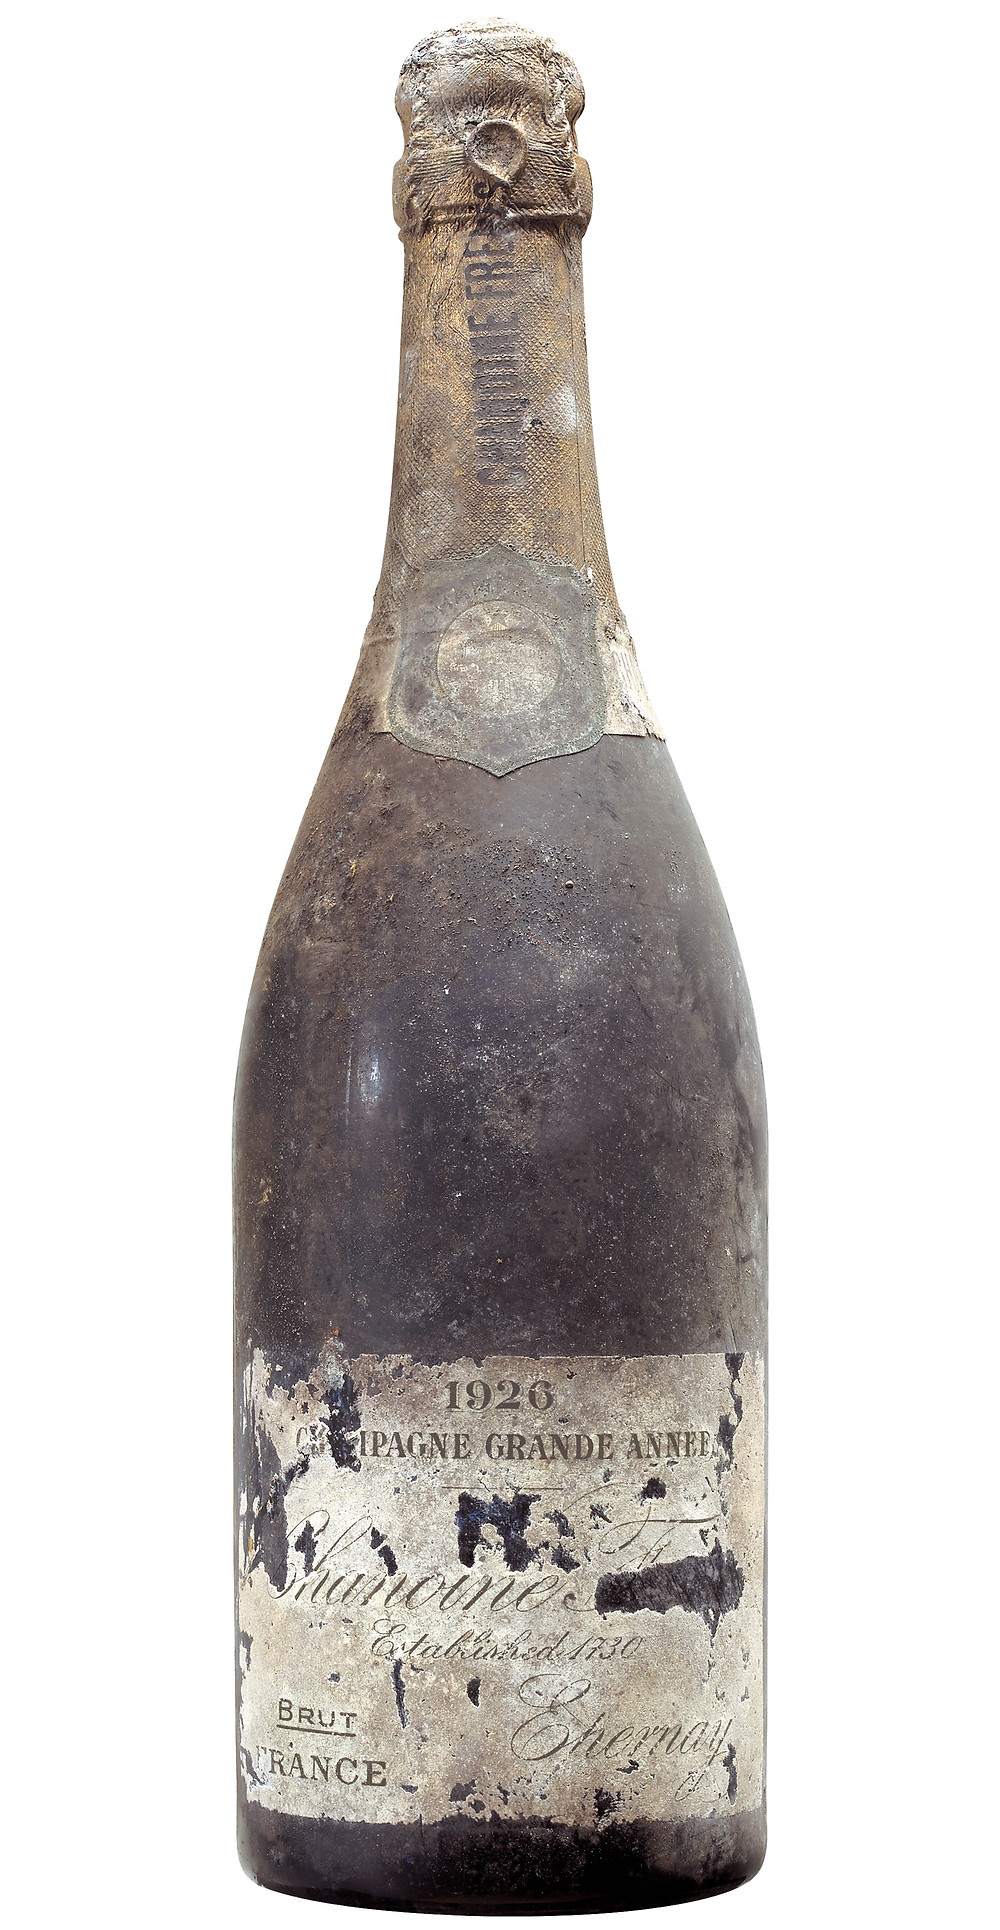 Chanoine Frères 1926 vintage brut bottle